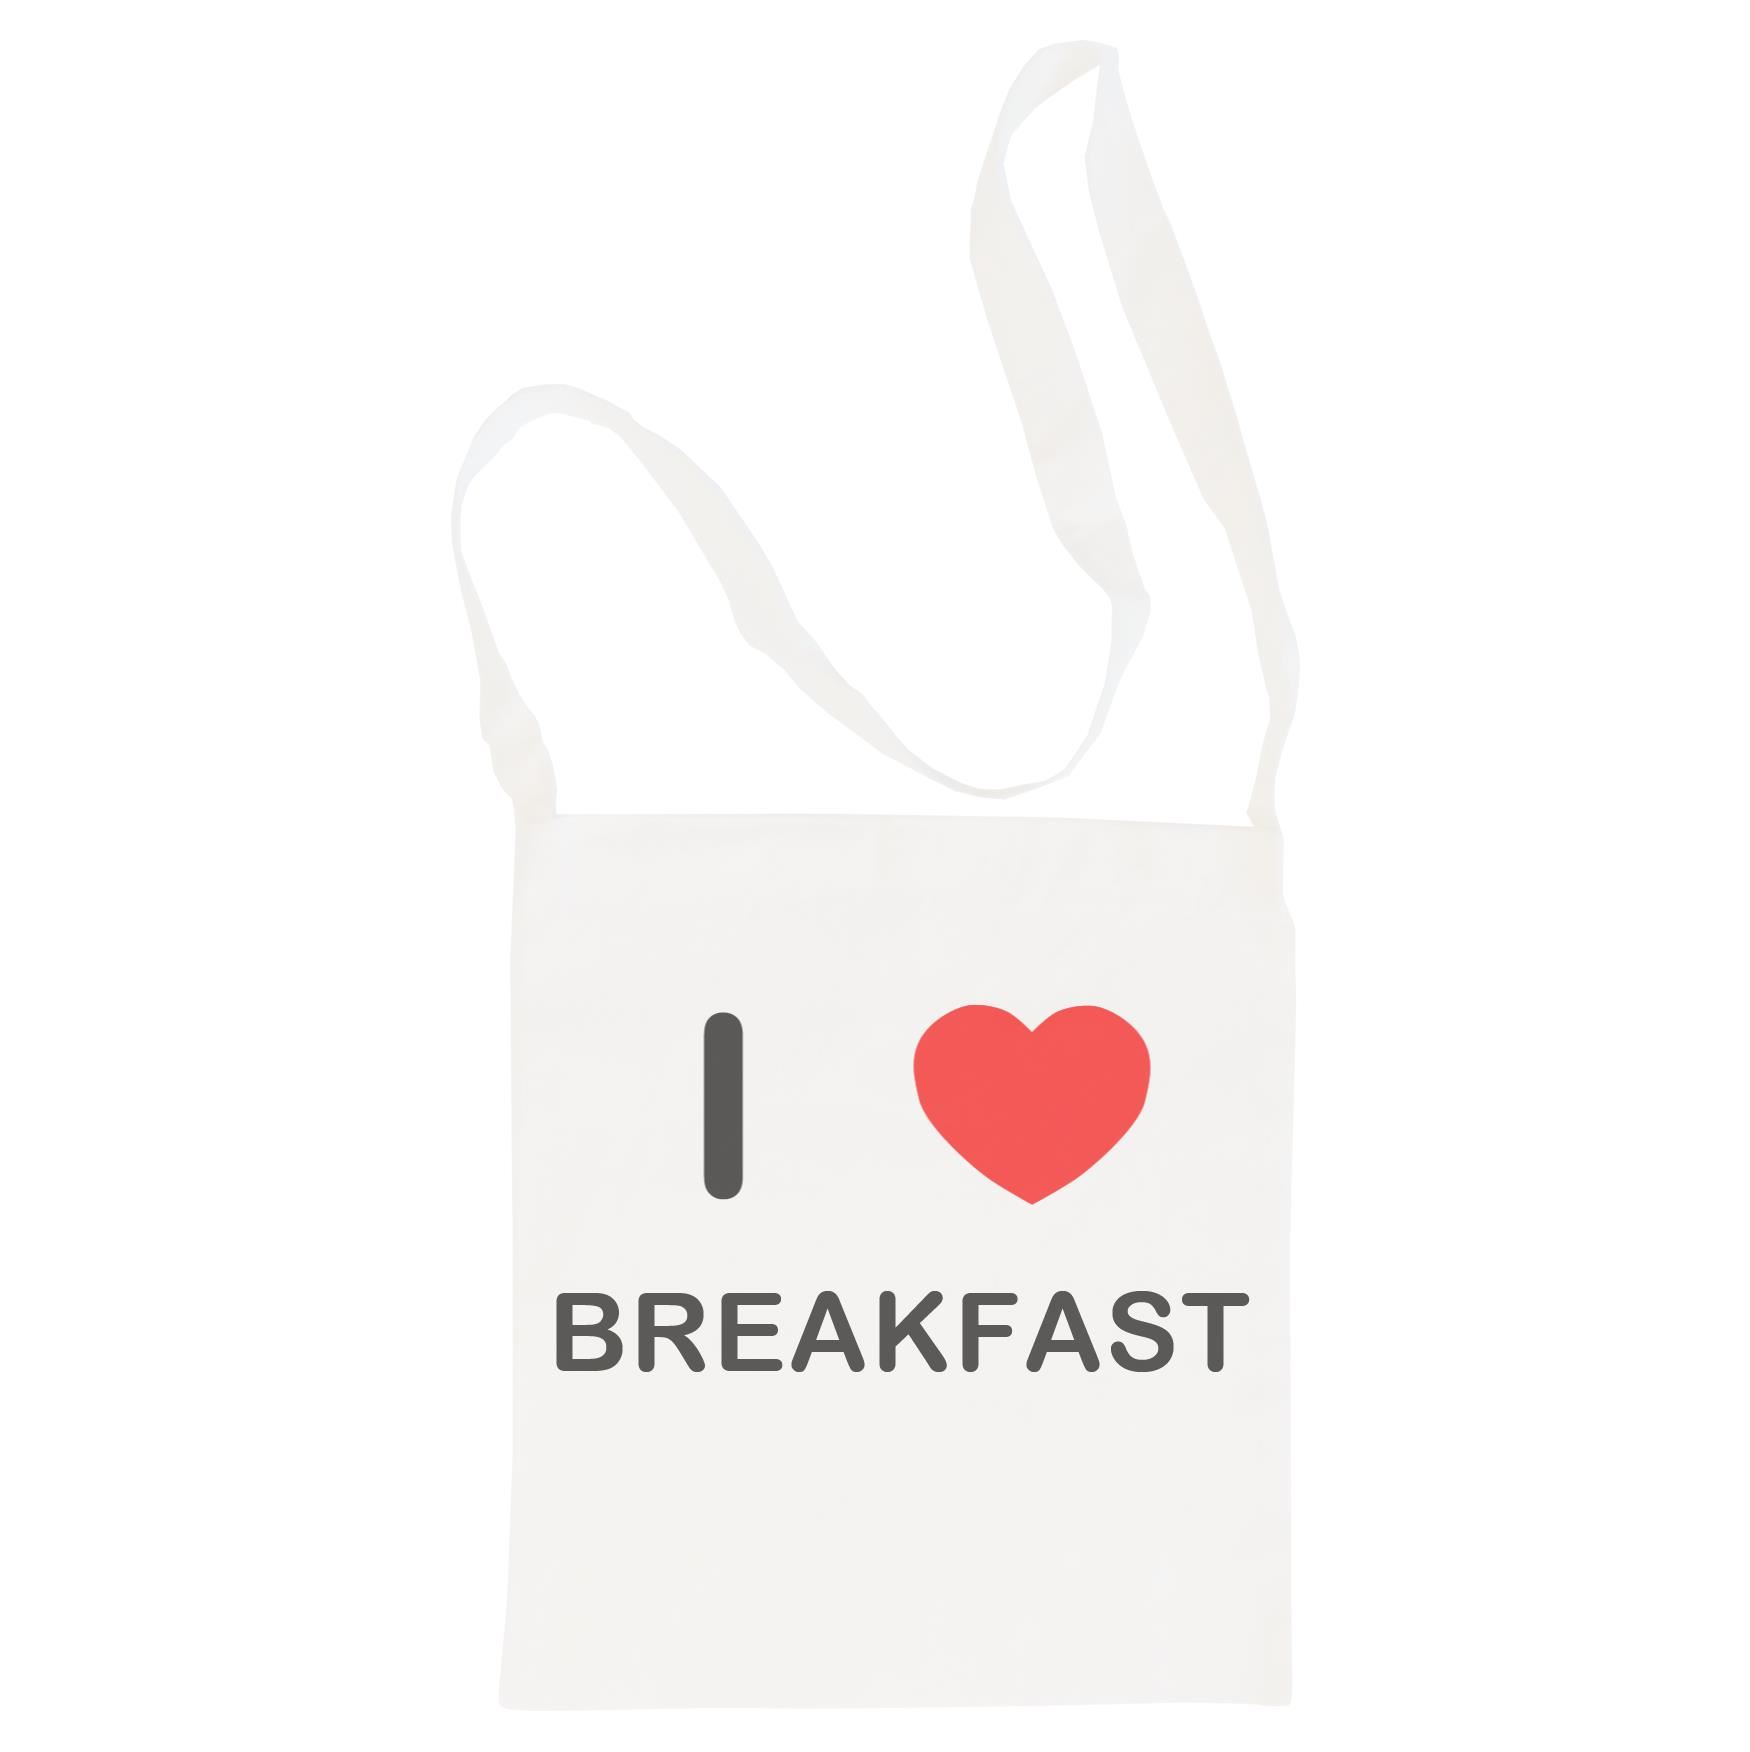 I Love Breakfast - Cotton Bag | Size choice Tote, Shopper or Sling